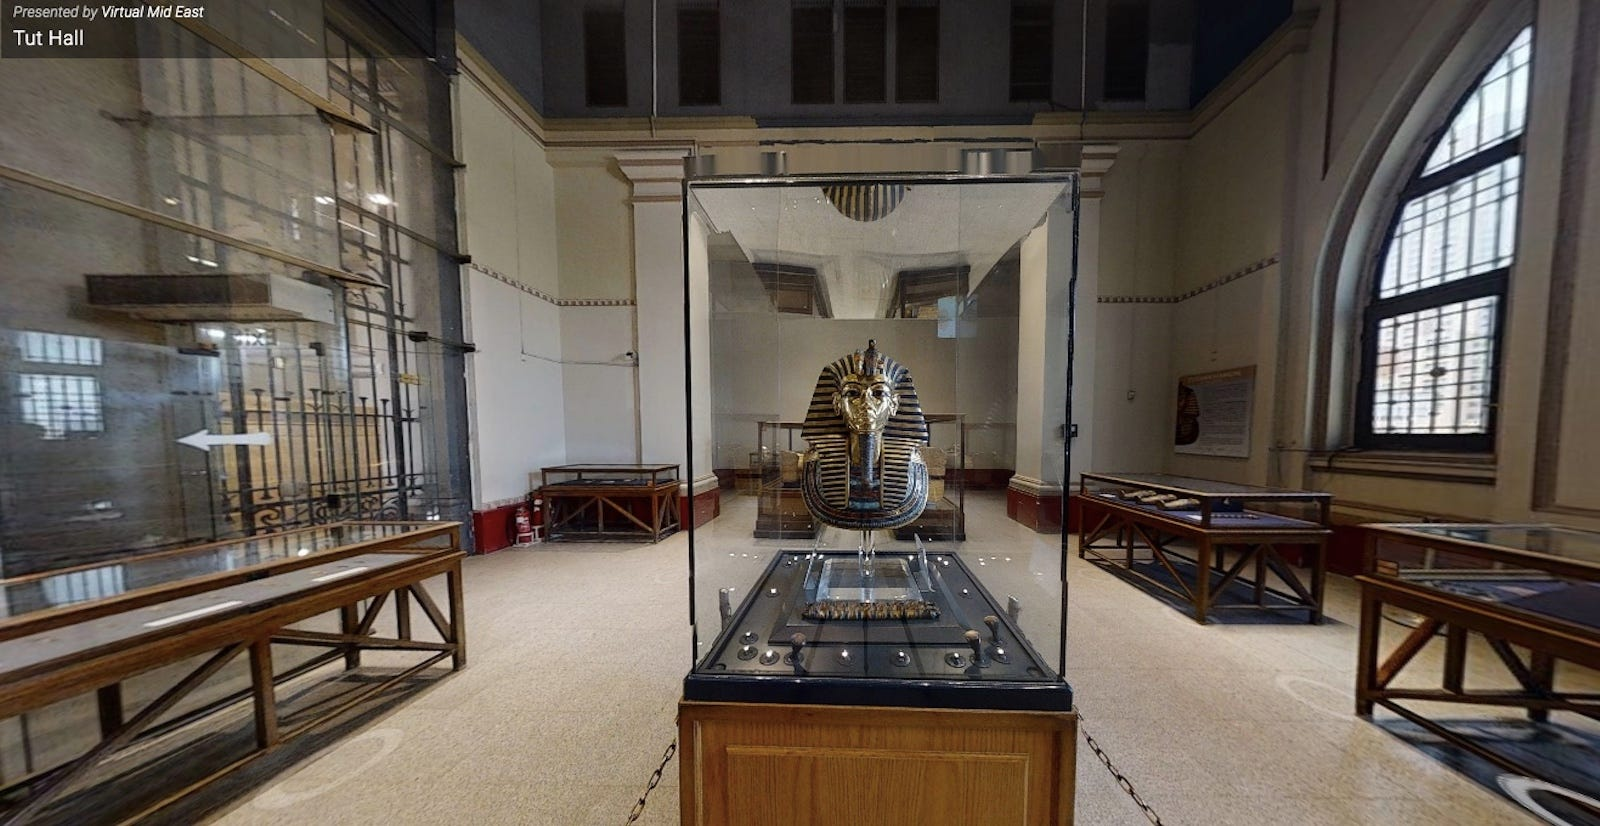 King Tut's golden mask in the Tut Hall at the Egyptian Museum.